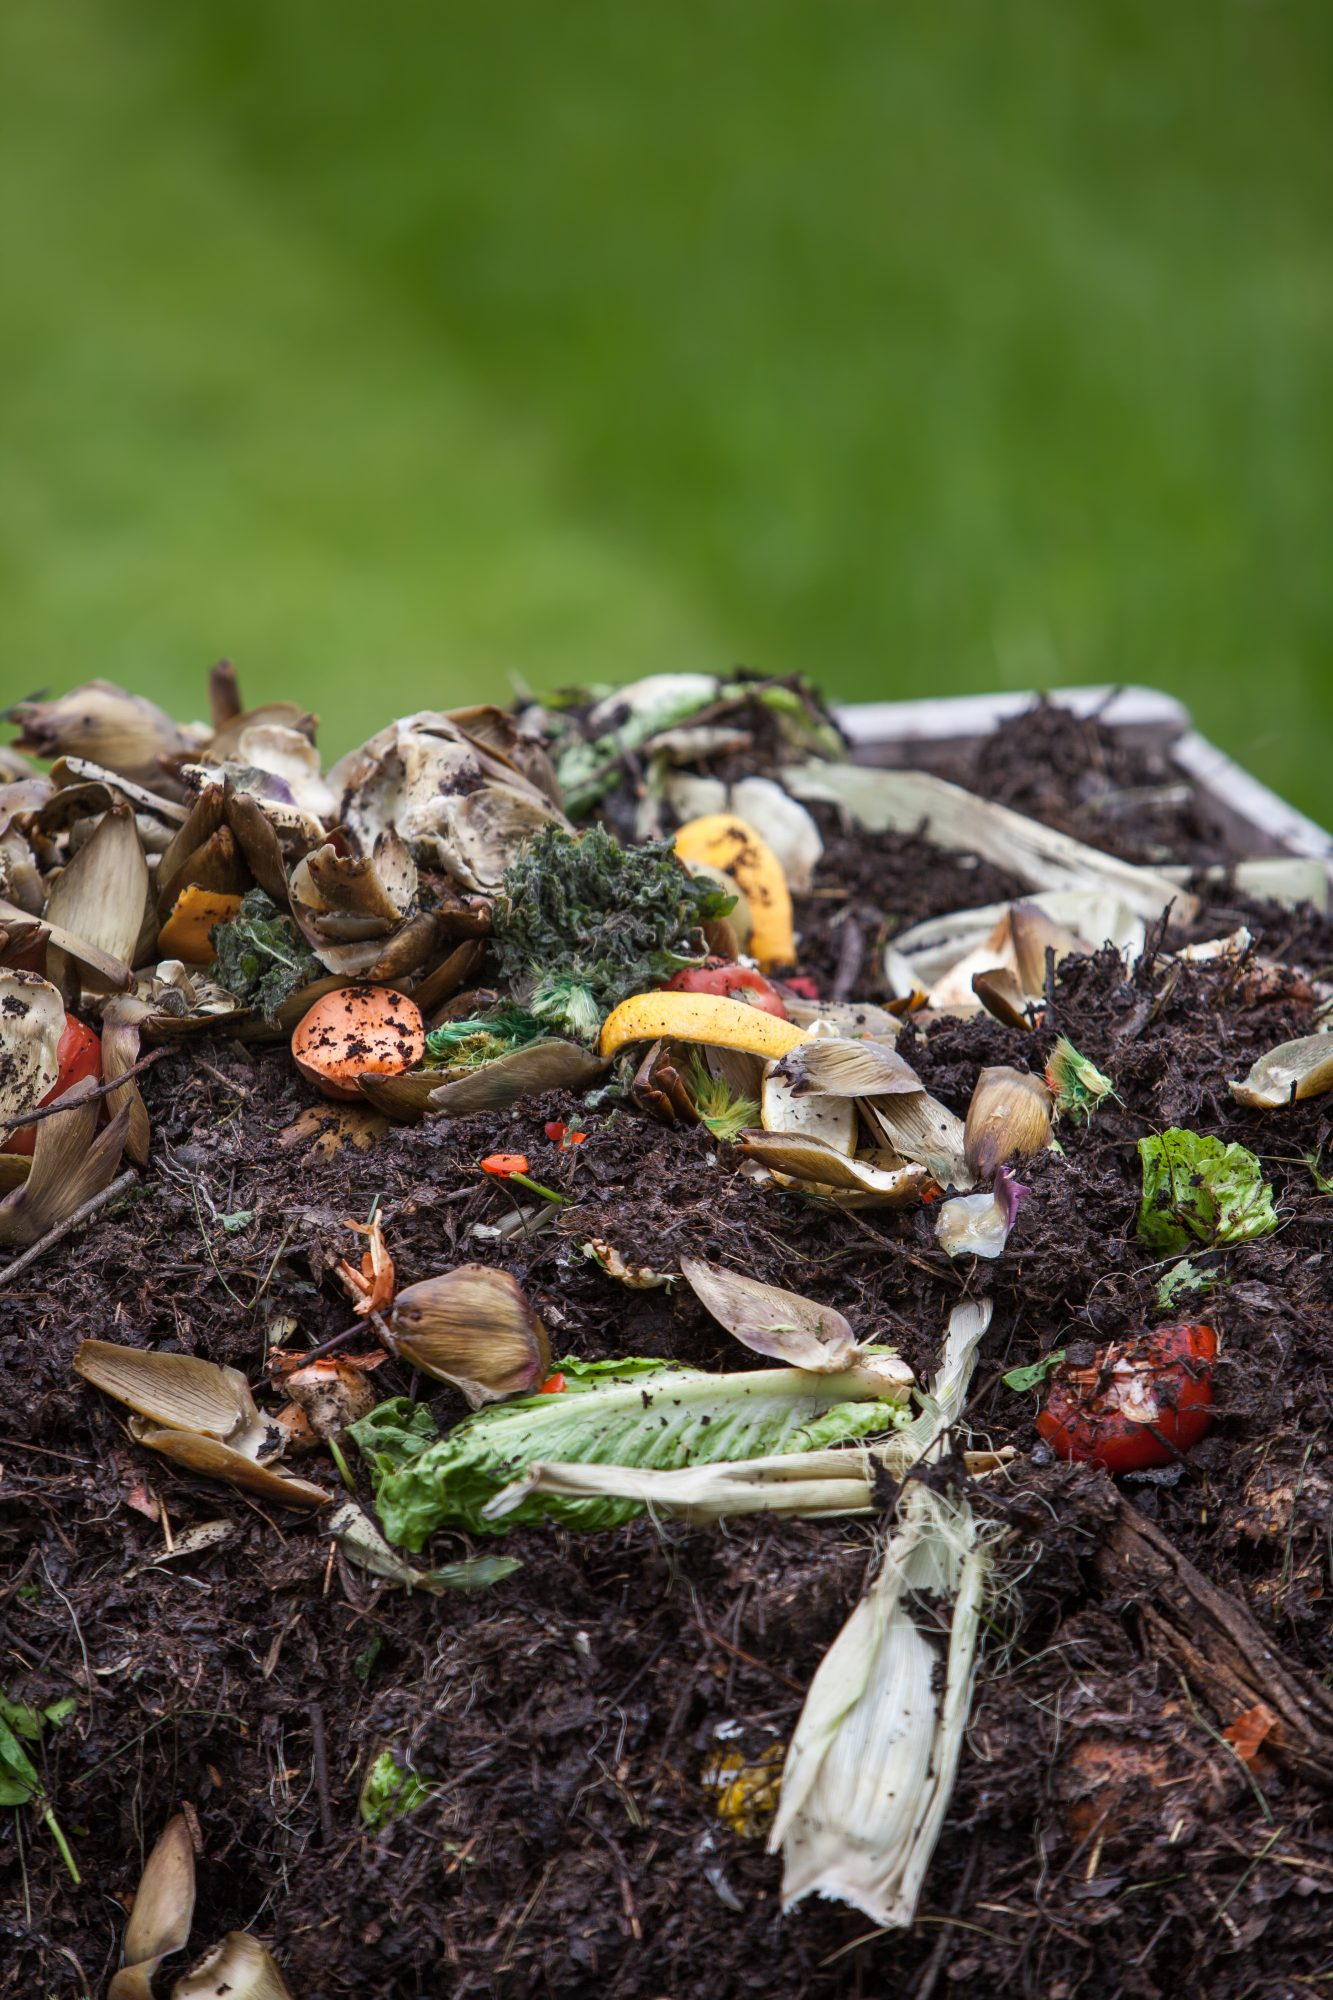 food scraps on top of compost pile